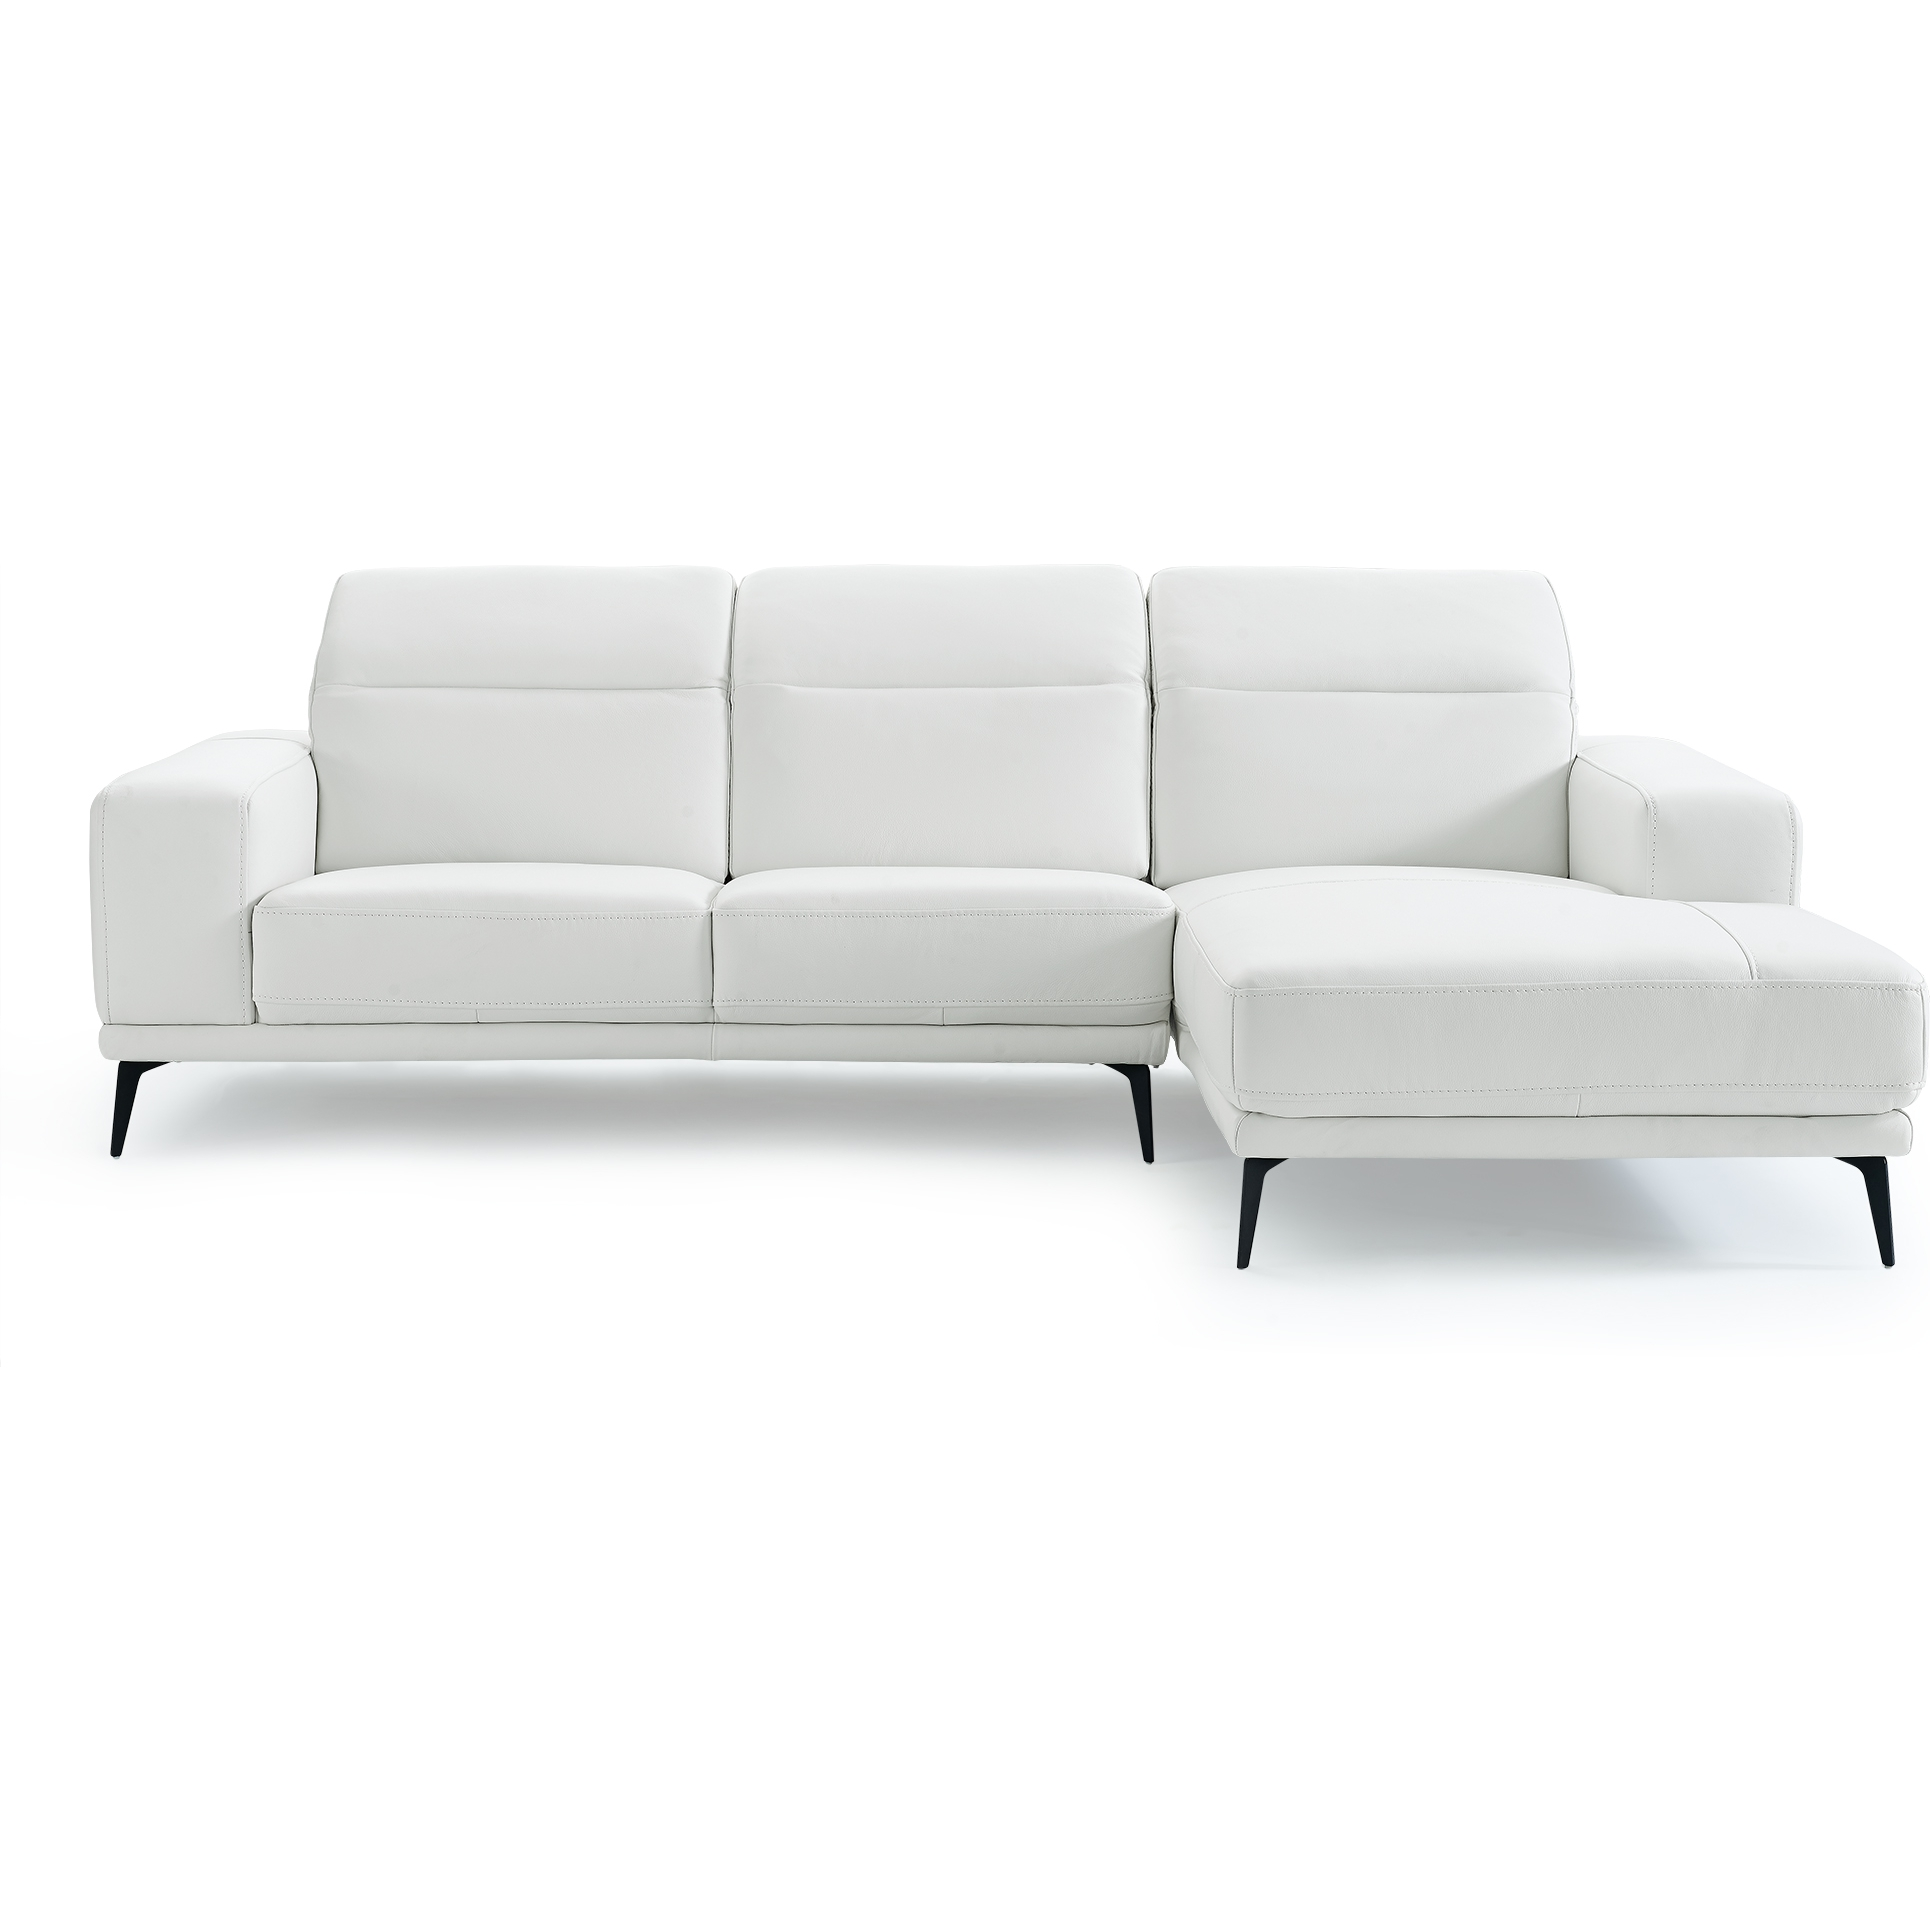 arhaus preston sofa how much does it cost to recover a uk sectional joybird thesofa